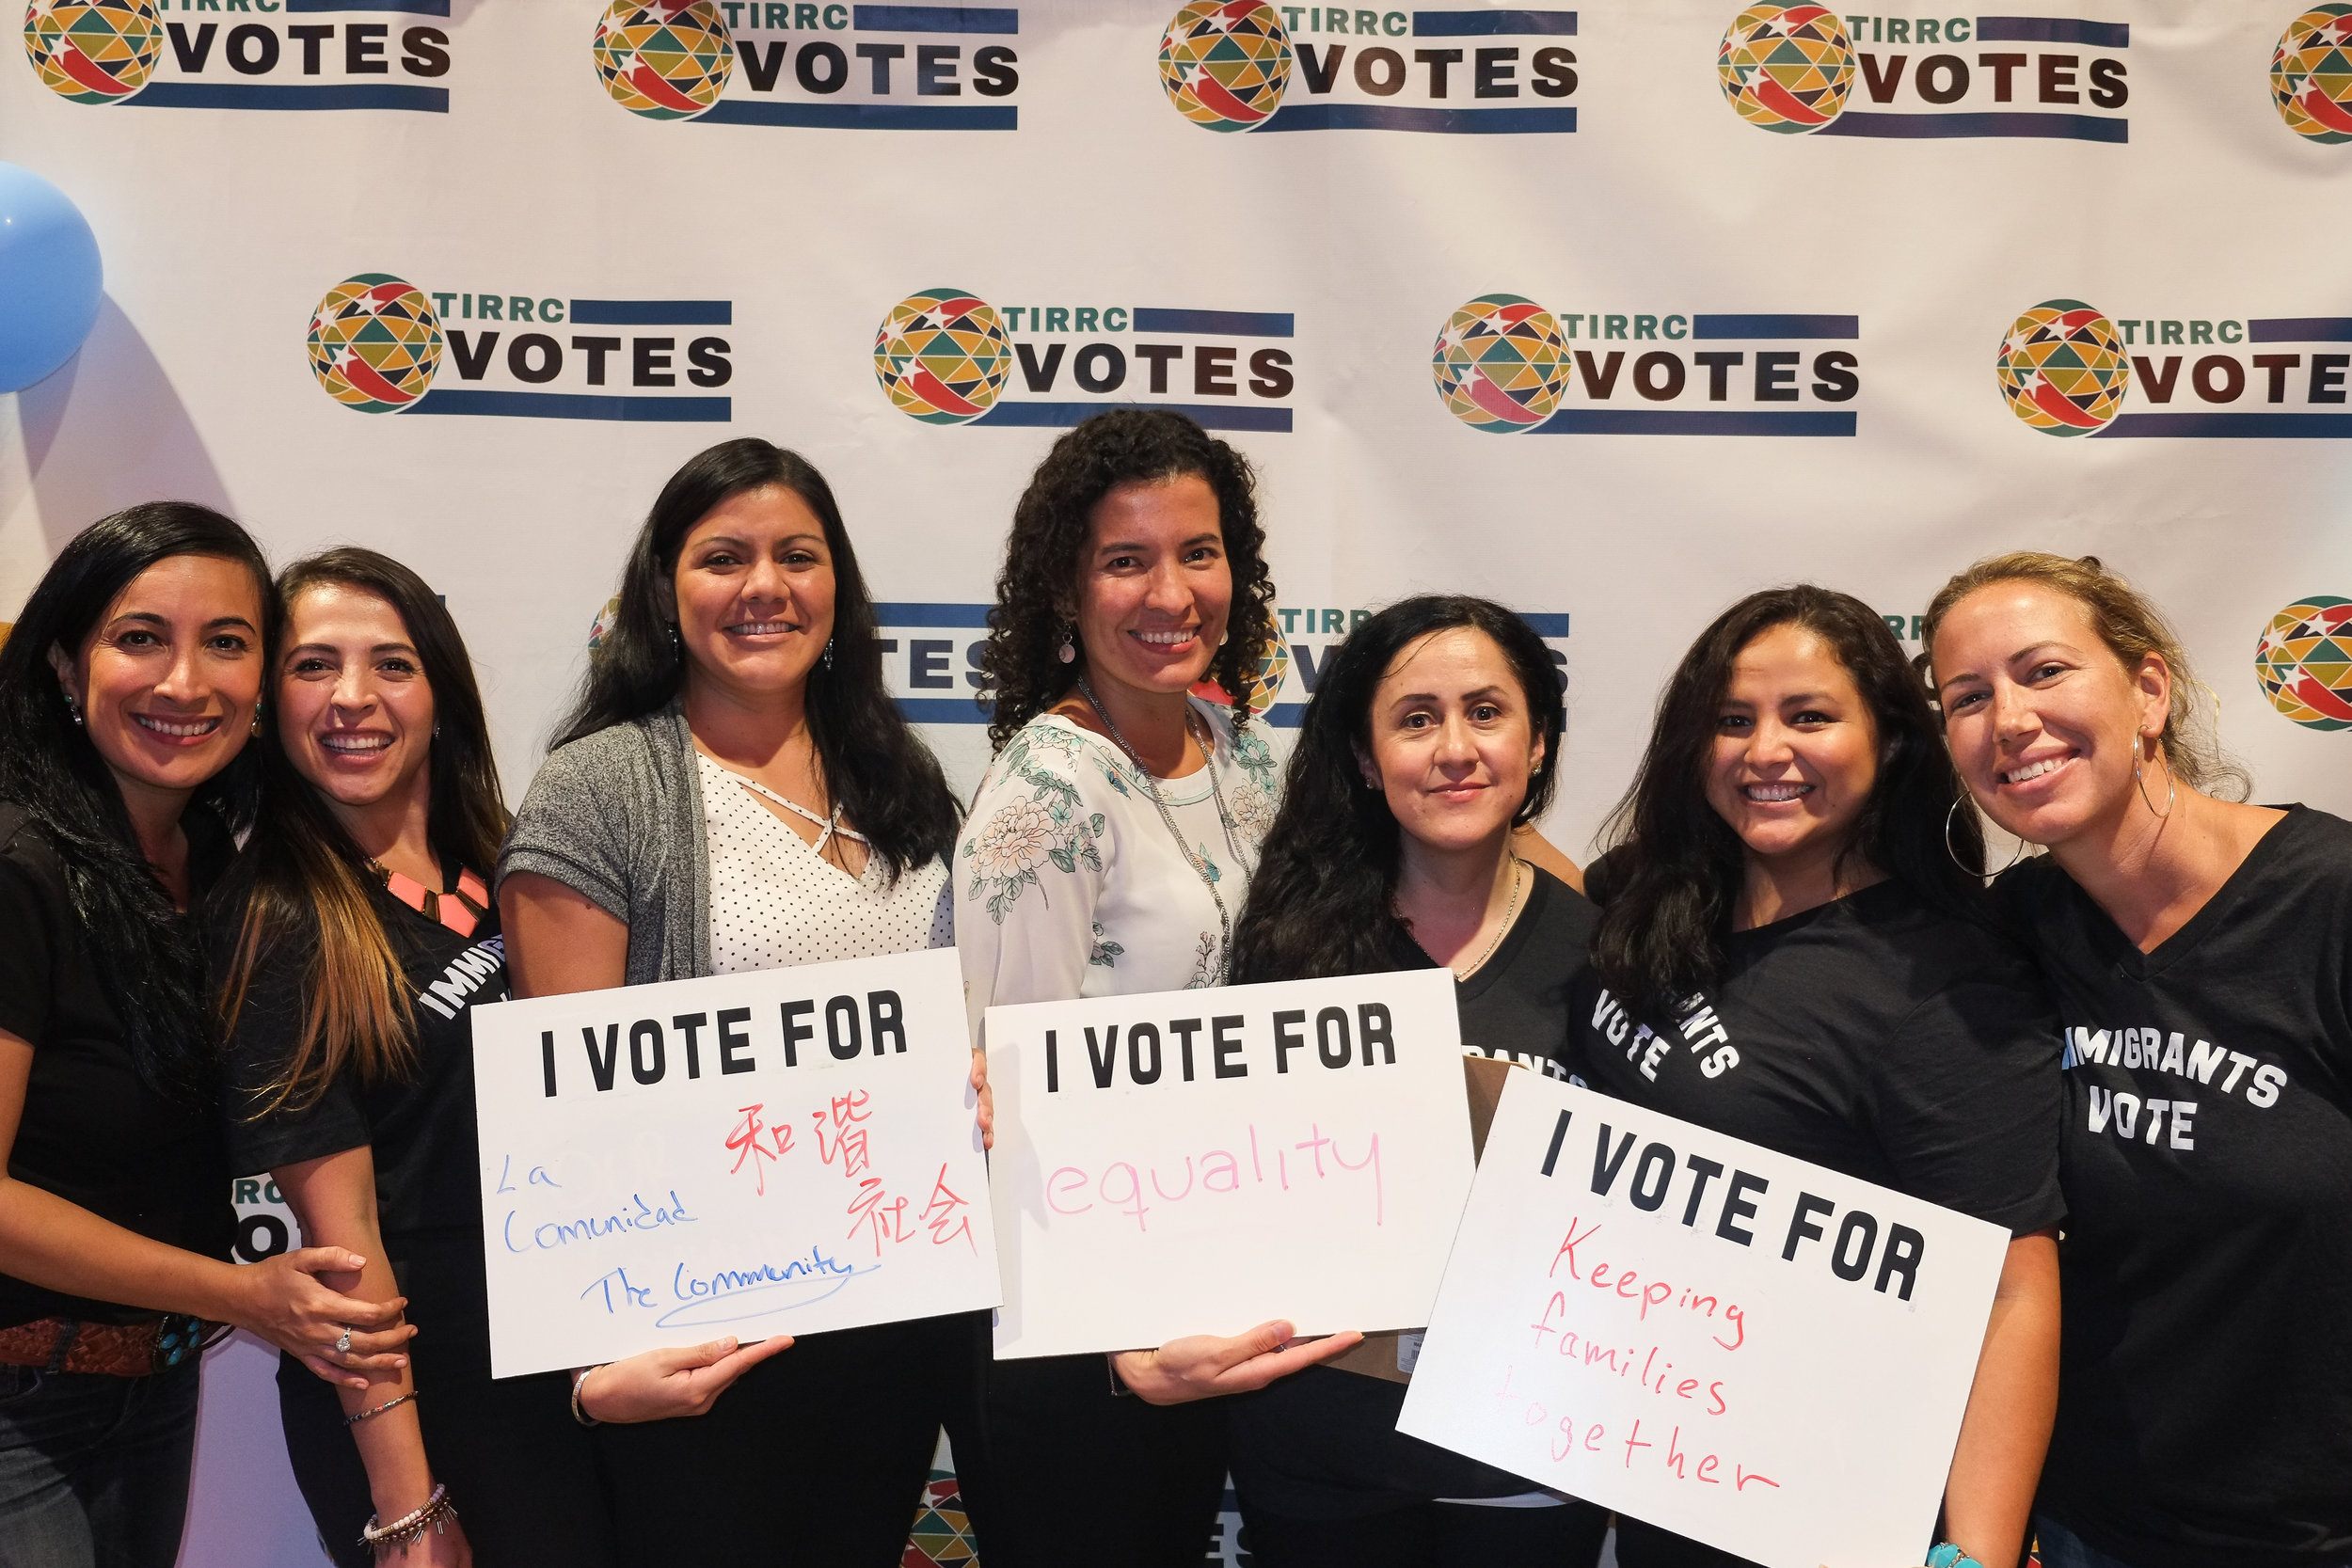 TIRRCVotes-PhotoBooth-53.jpg